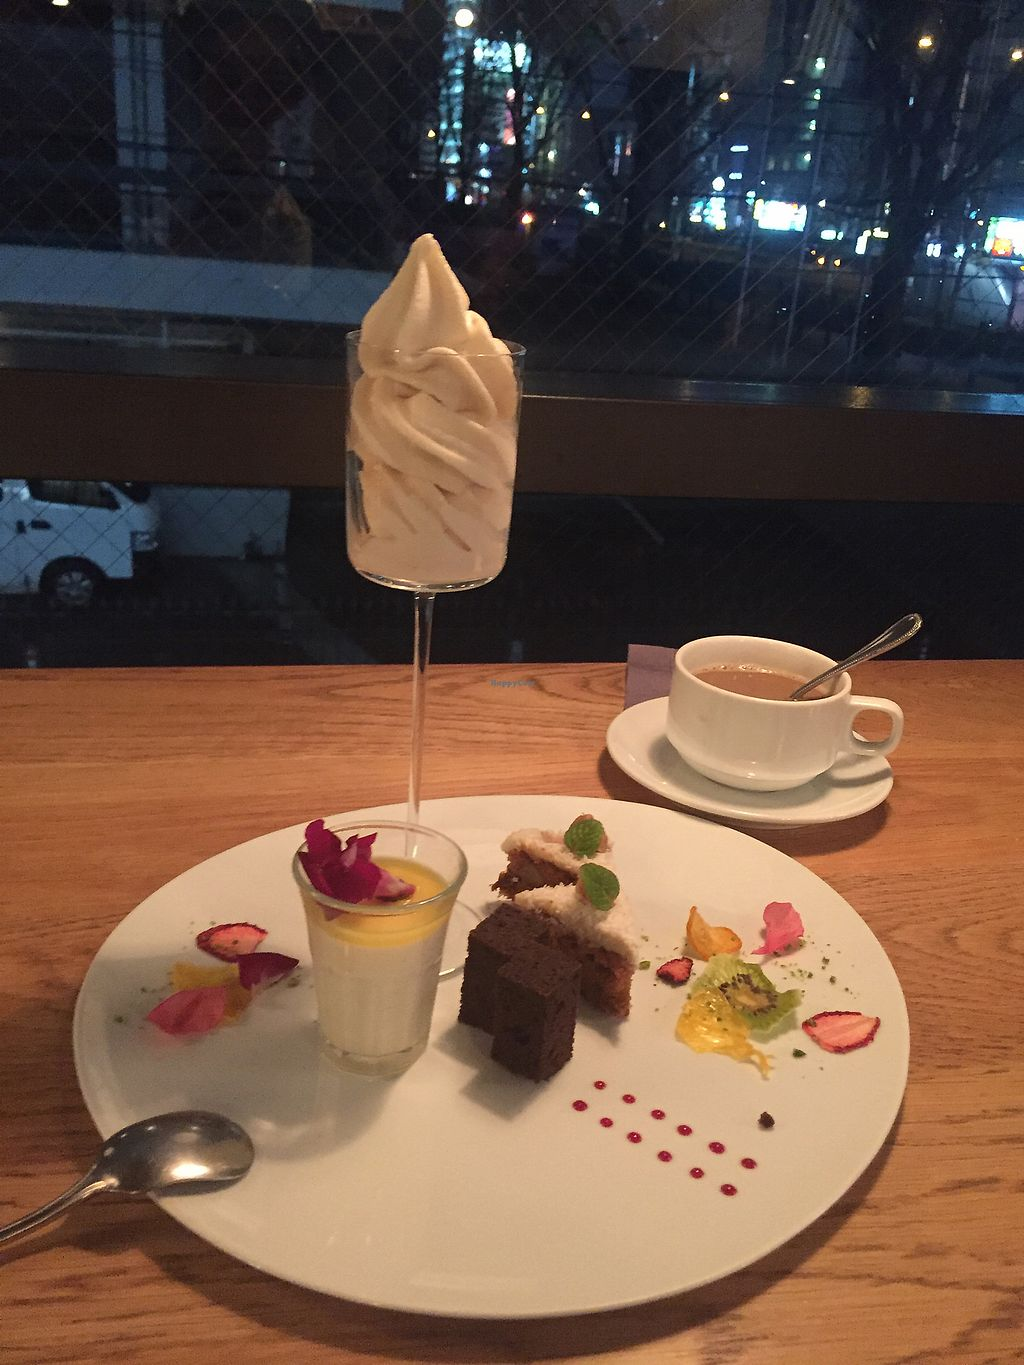 """Photo of Restaurant 8ablish  by <a href=""""/members/profile/Aliwg"""">Aliwg</a> <br/>Assorted dessert platter  <br/> February 25, 2018  - <a href='/contact/abuse/image/64910/363632'>Report</a>"""